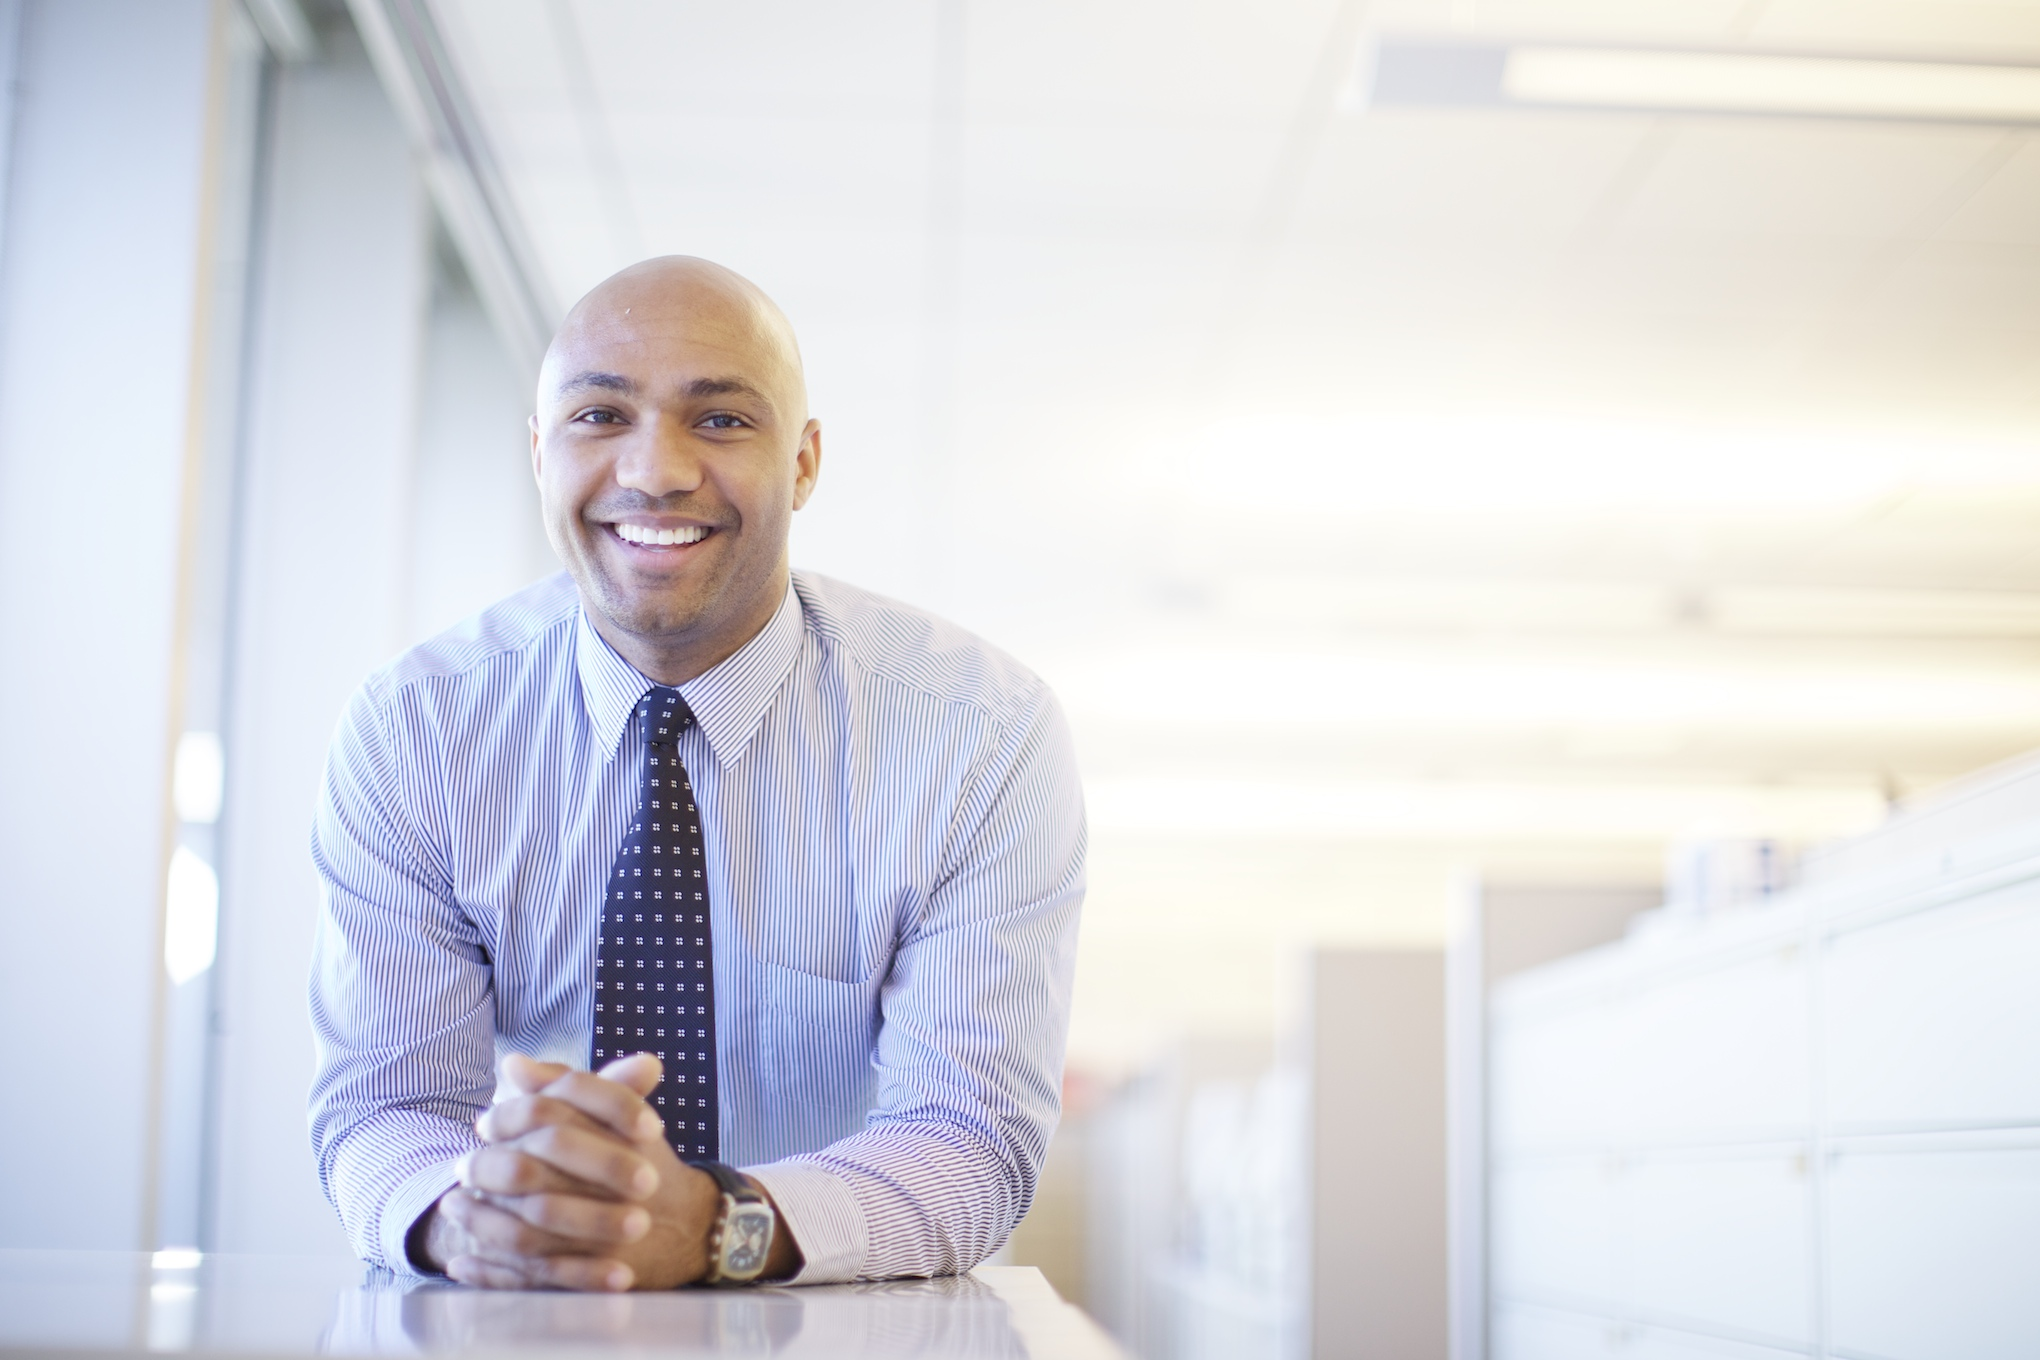 An corporate professional stands for an environmental portrait in his office.